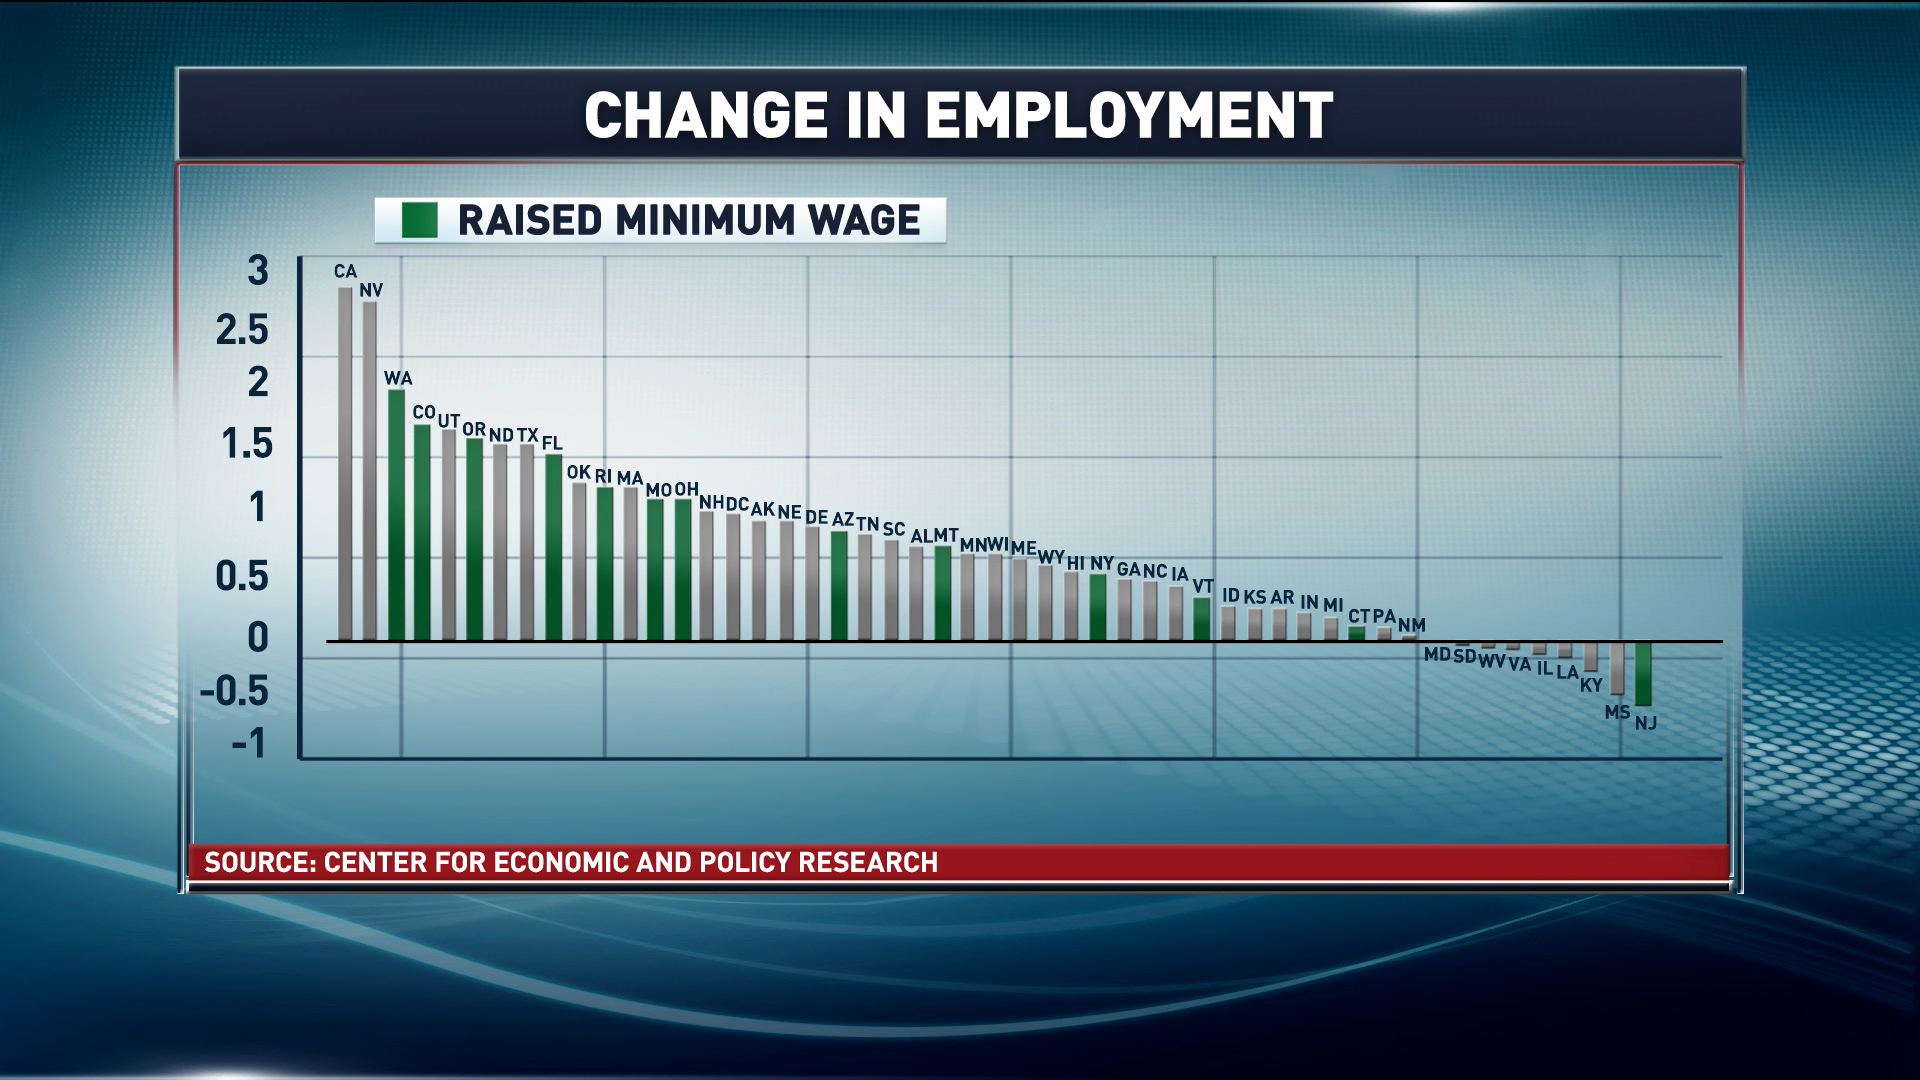 Good news for states that raised minimum wage